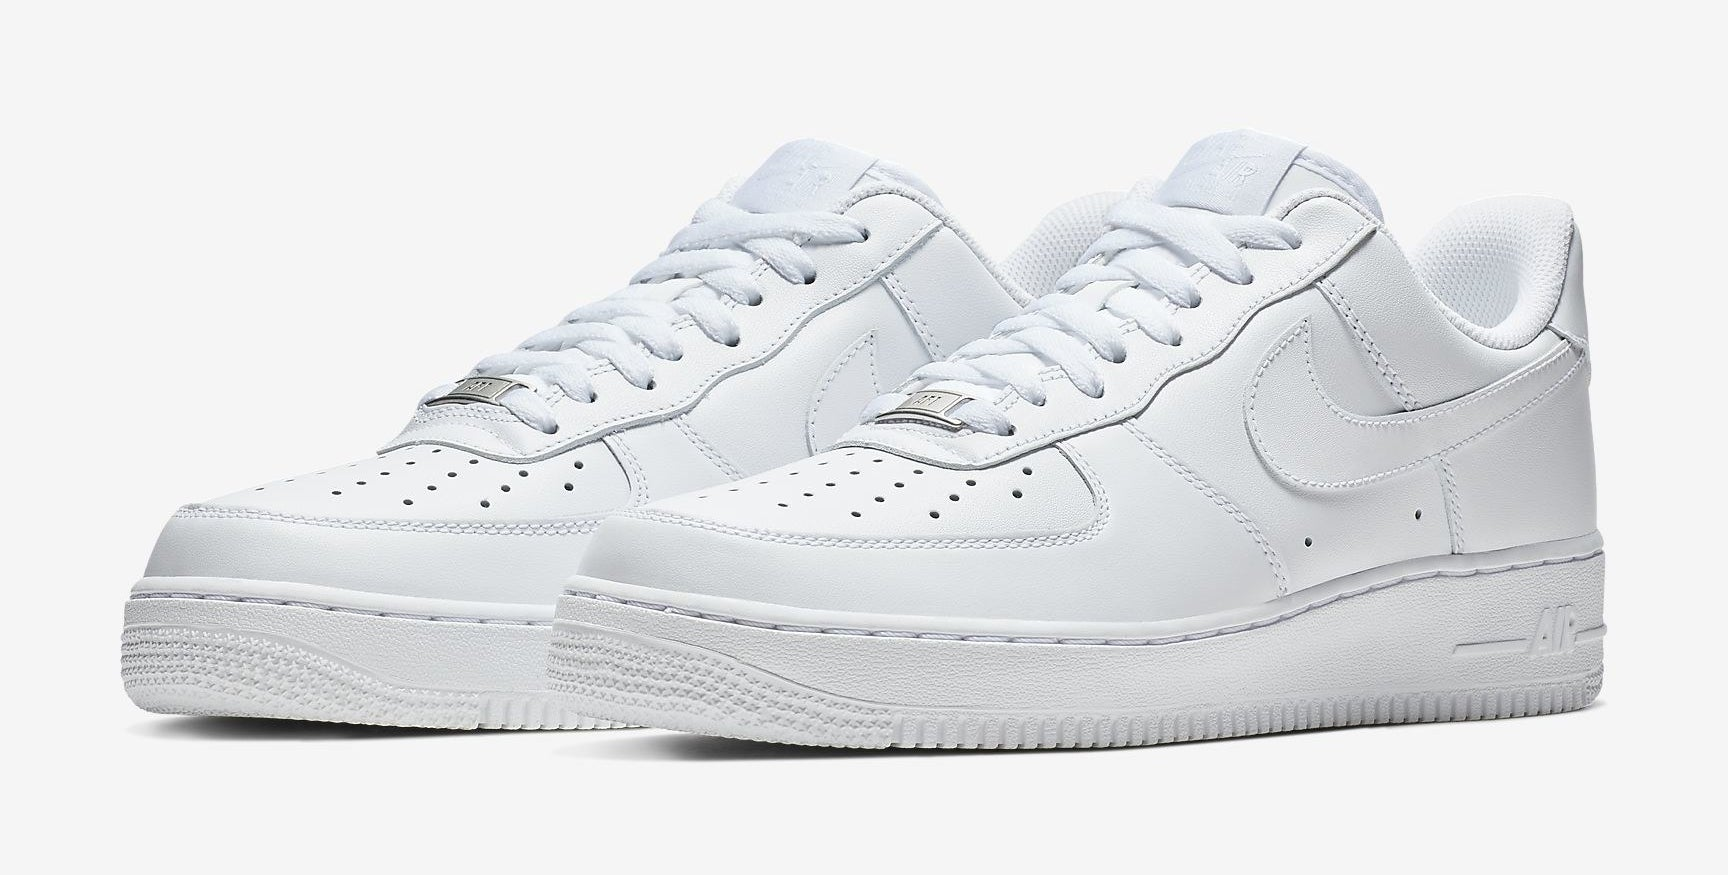 The shoes in white